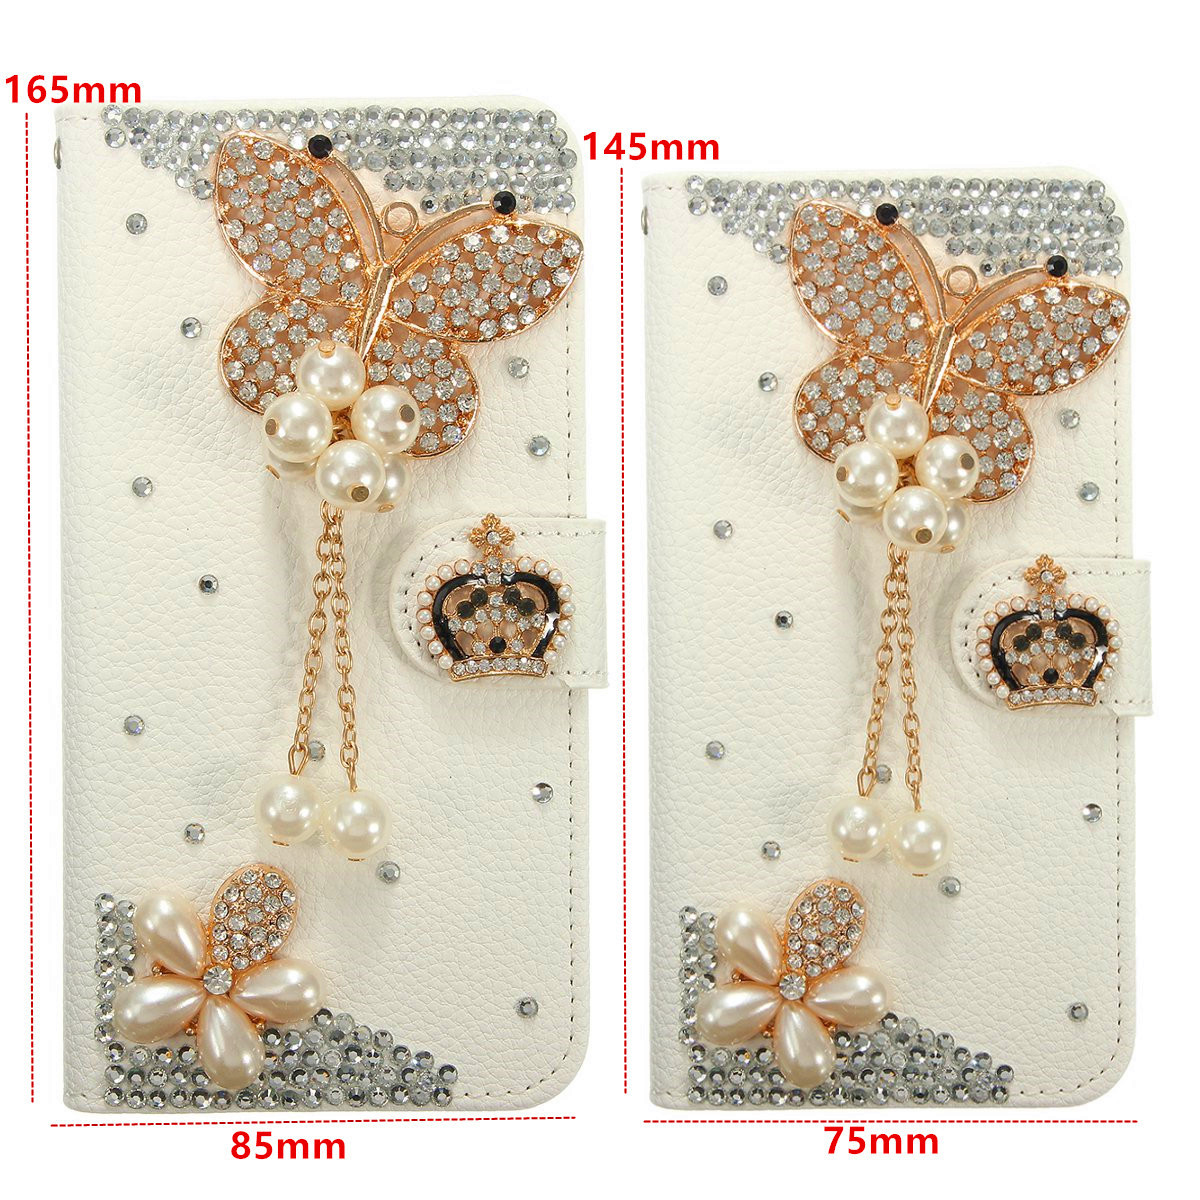 Crystal Diamond Pearl Flower Pattern Wallet Case For iPhone 7 & 7Plus